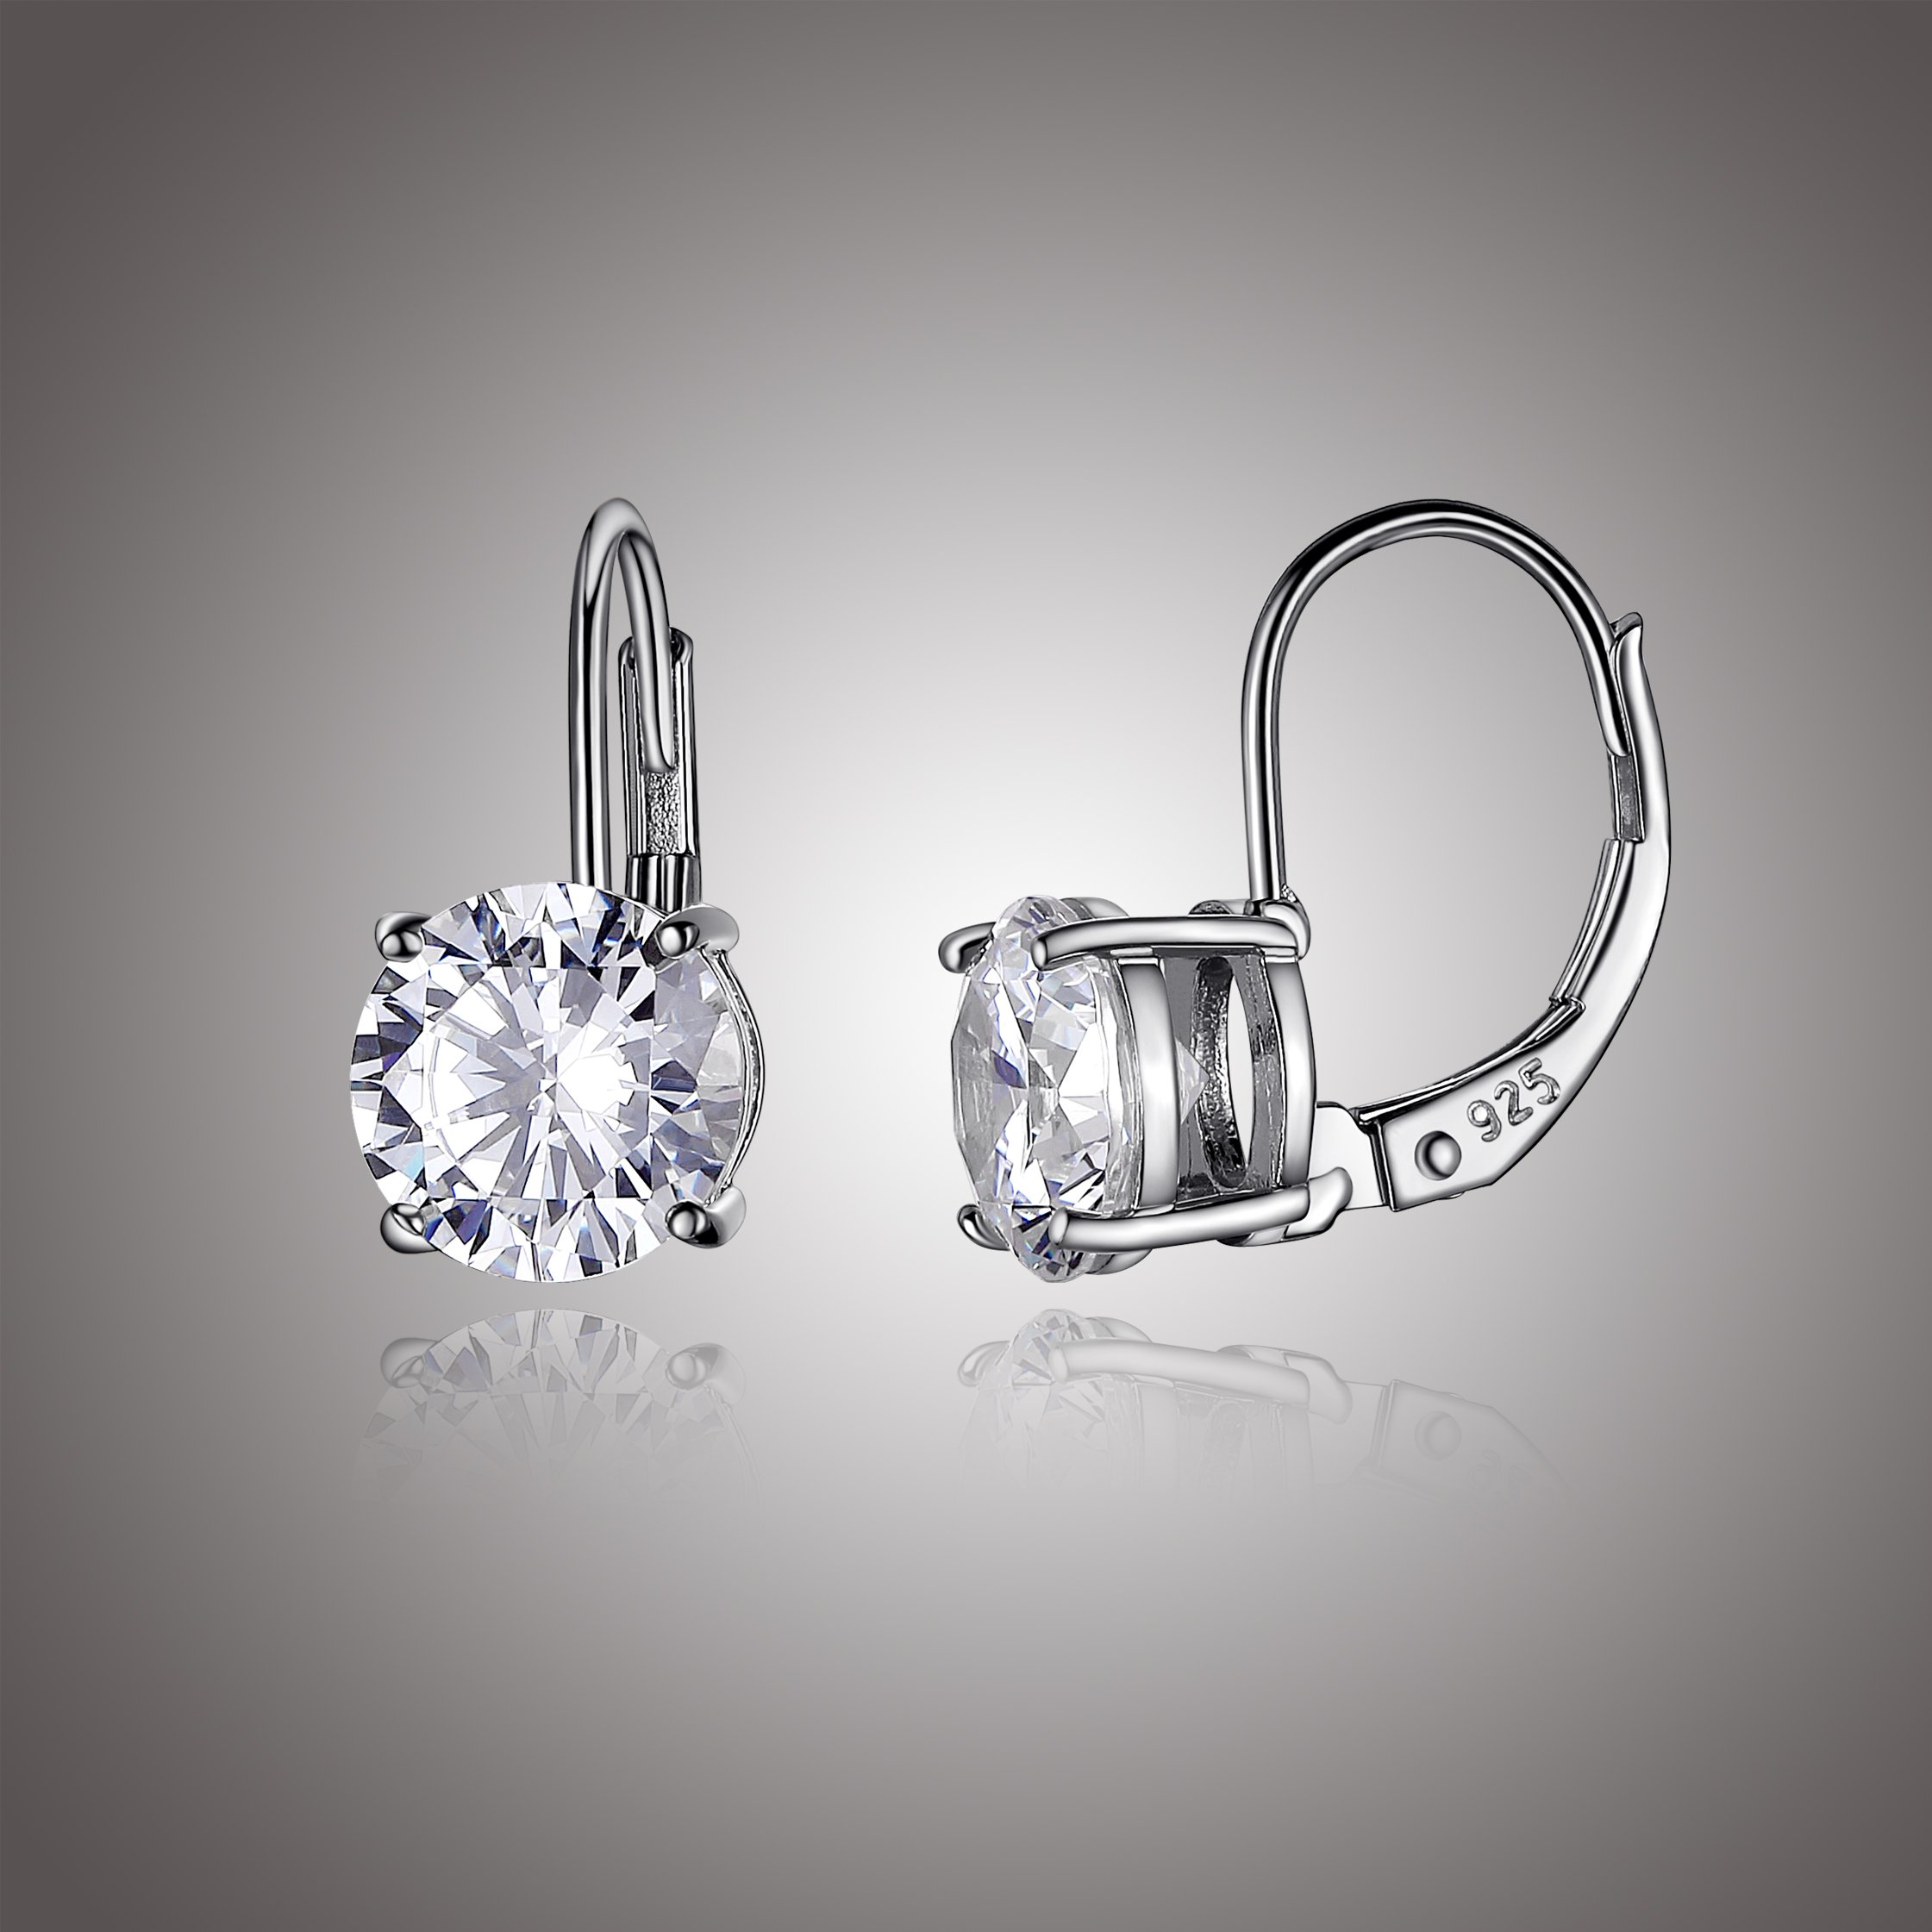 Platinum Plated Sterling Silver Round 6.5mm Cubic Zirconia Leverback Earrings